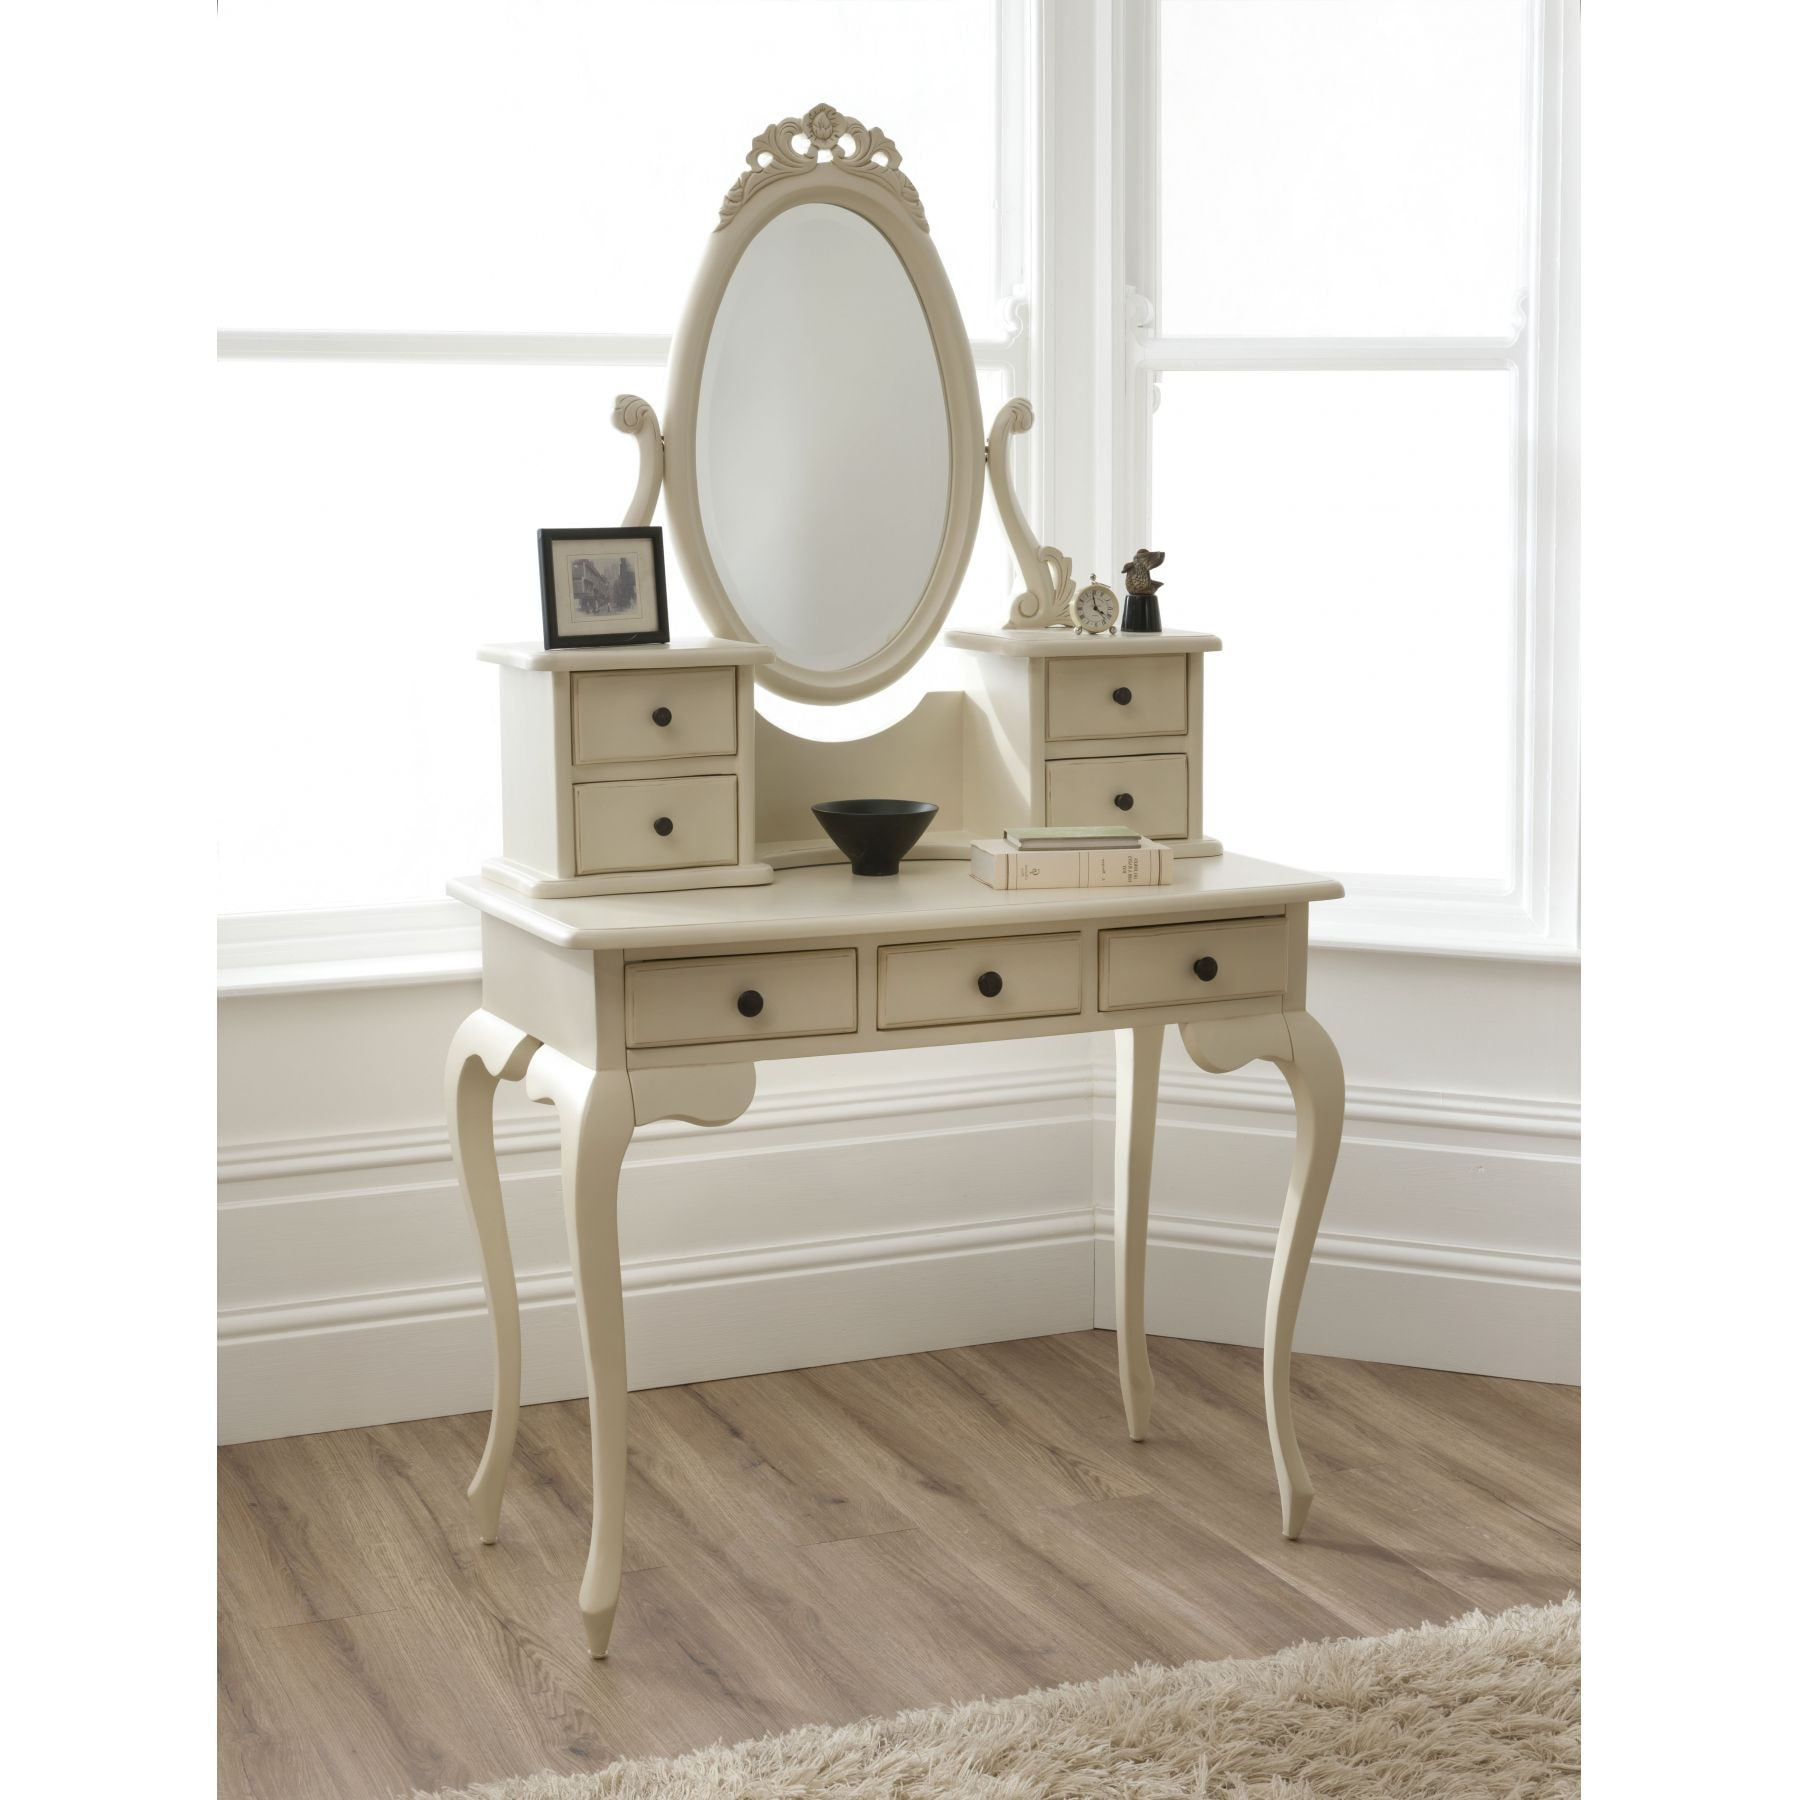 Bordeaux Shabby Chic Dressing Table Set | Shabby Chic Furniture